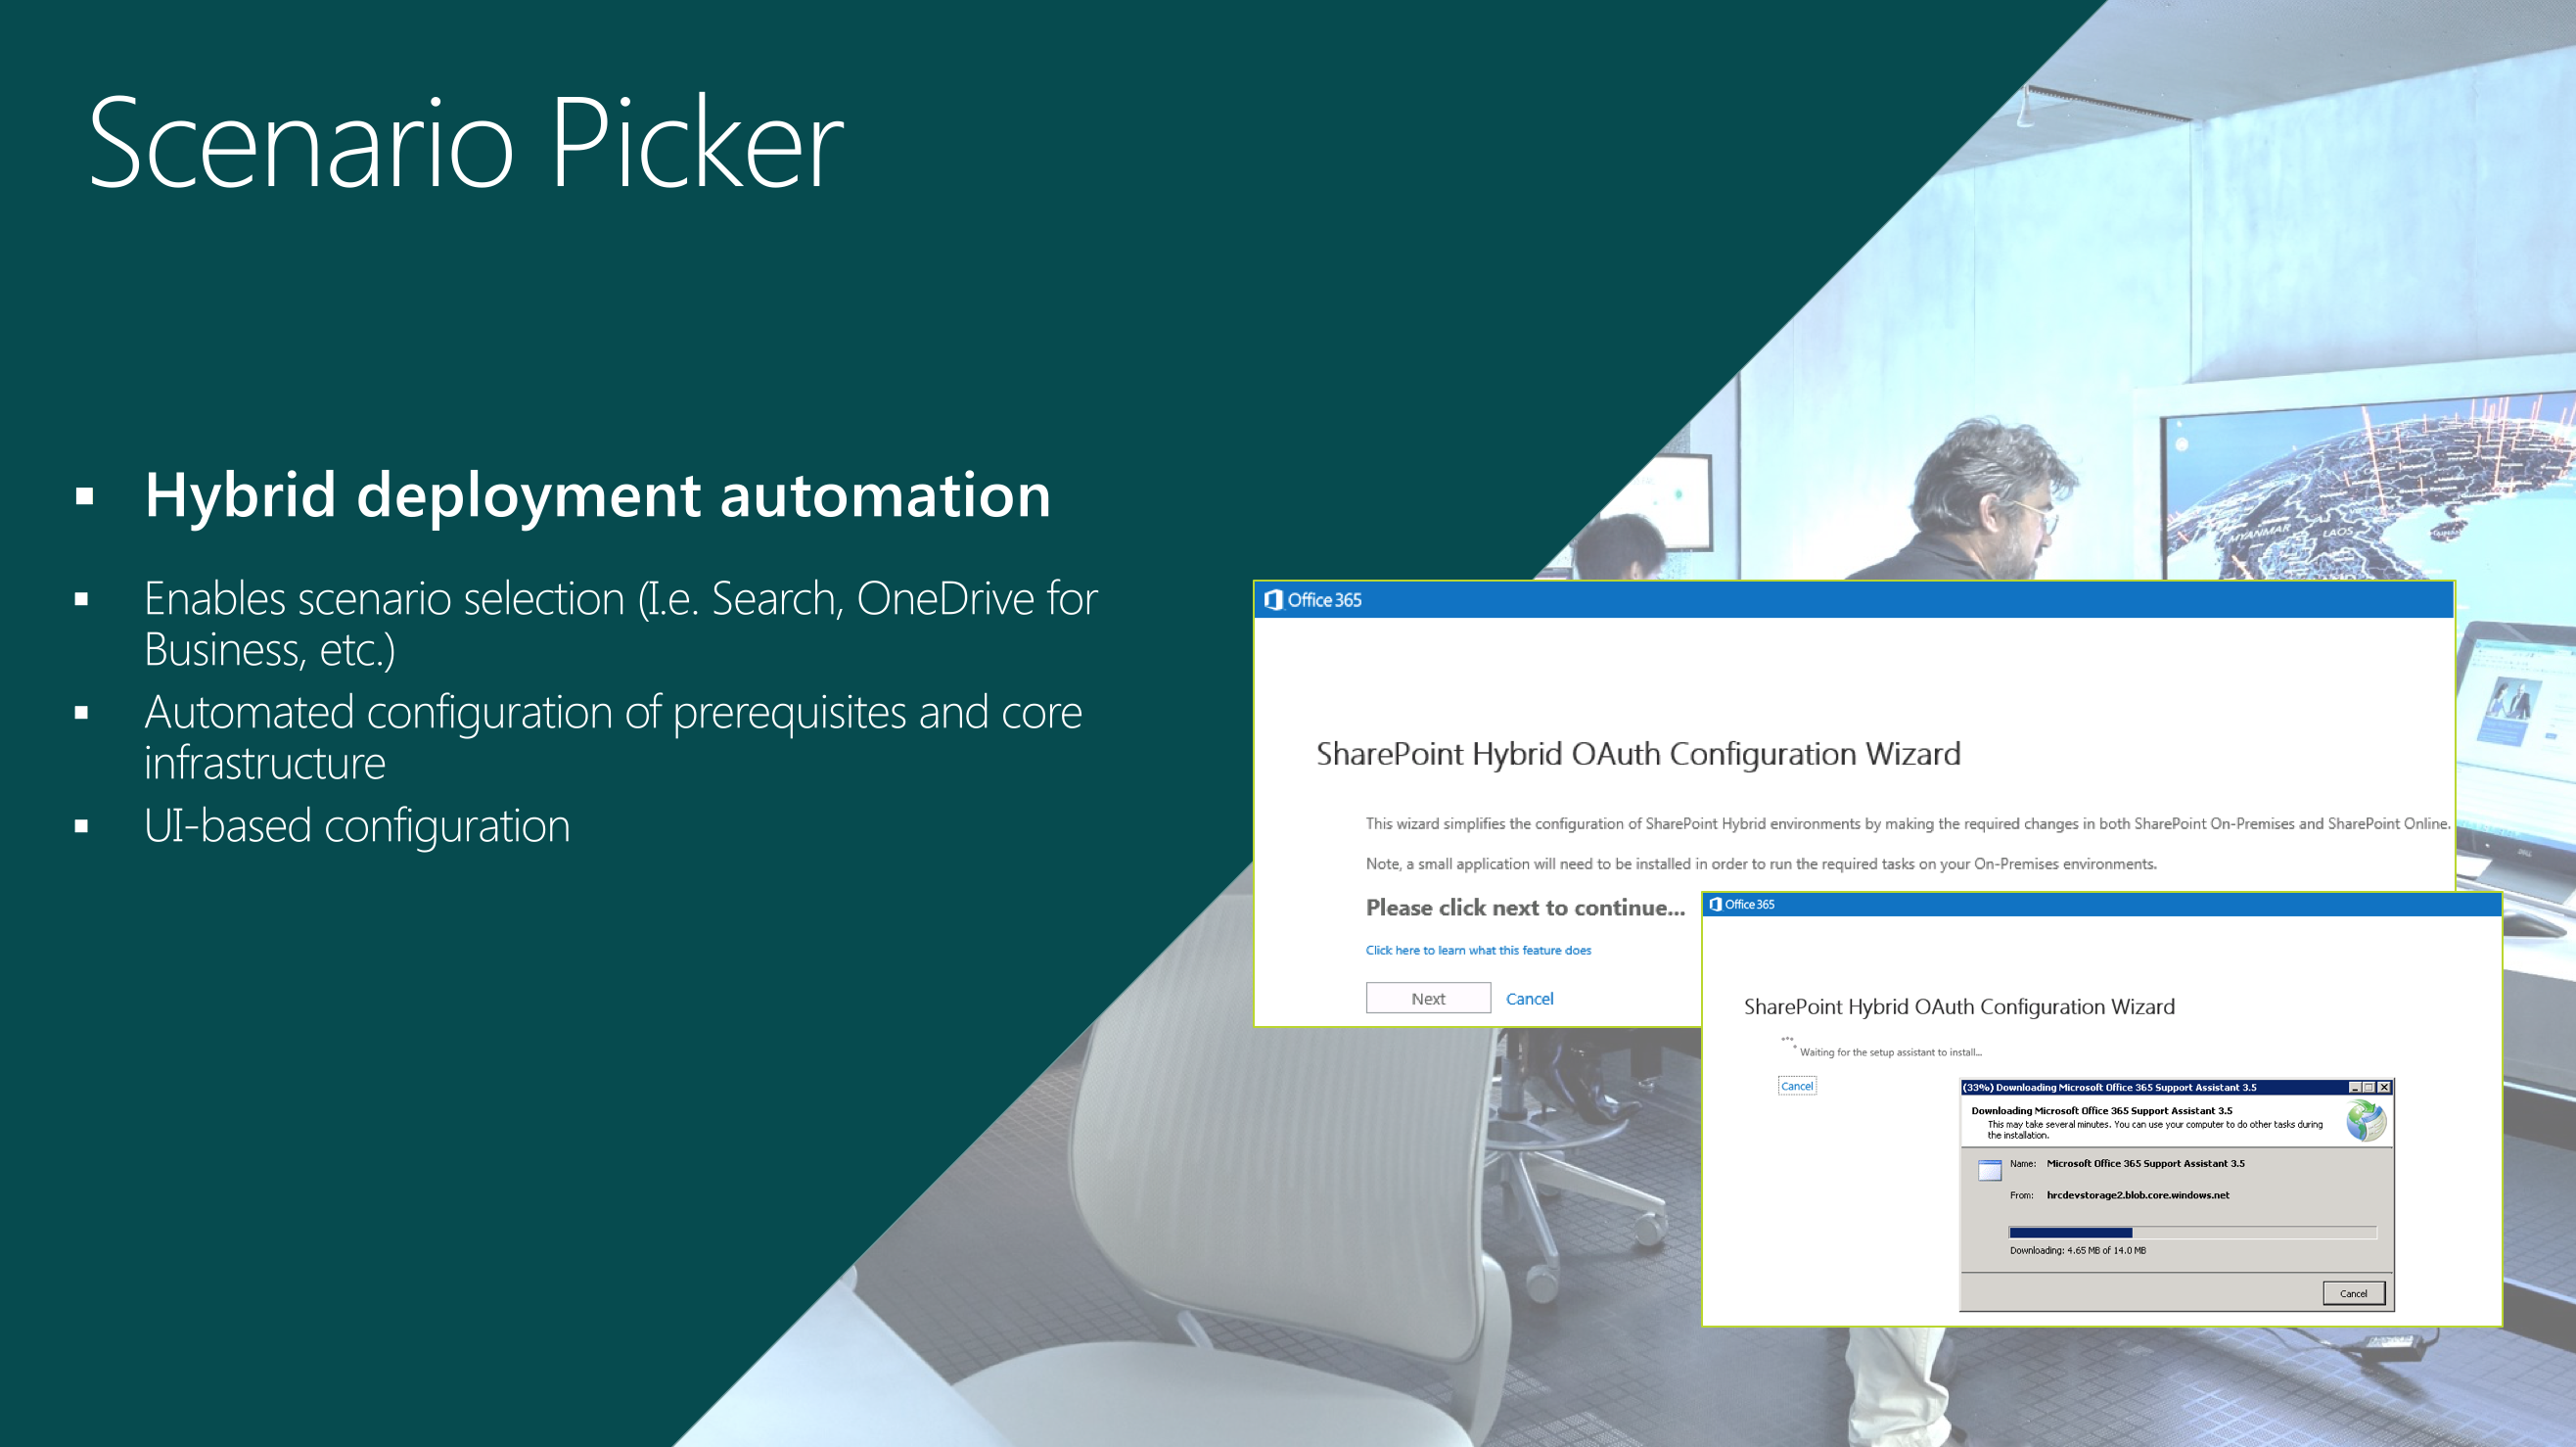 SharePoint 2016 scenario picker